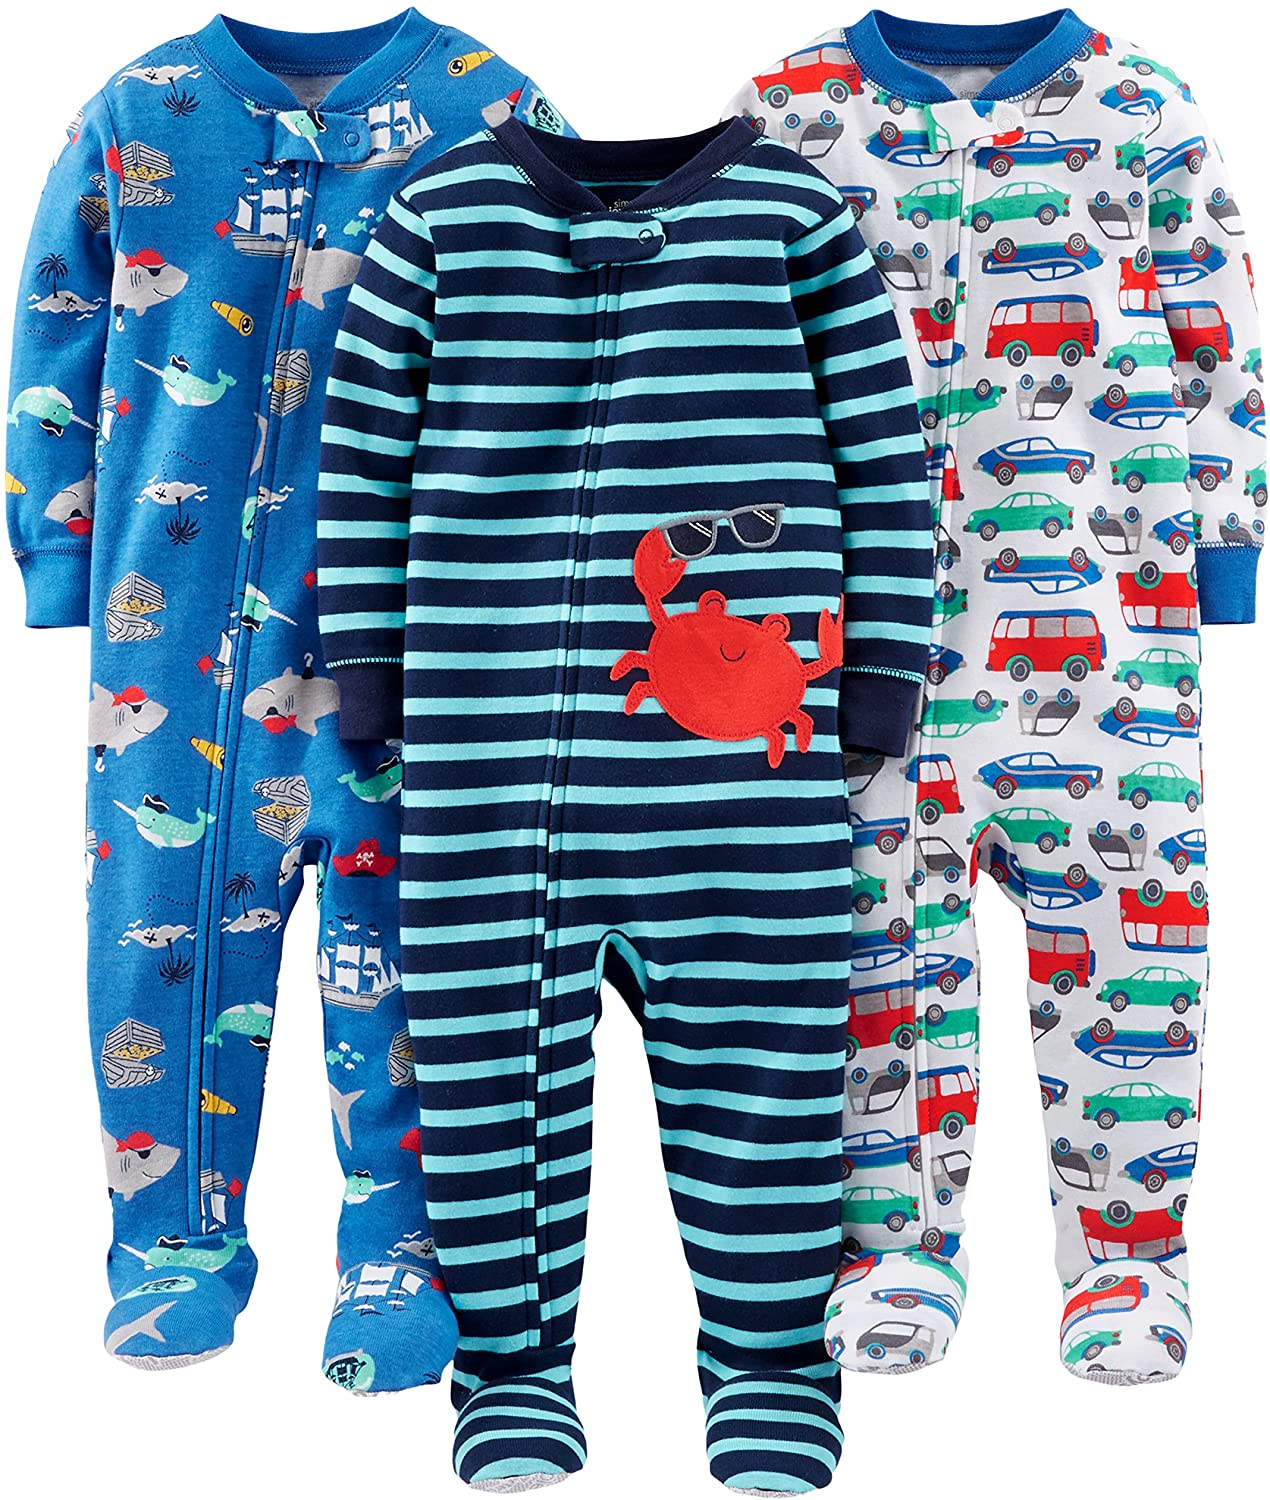 Simple Joys by Carter's Boys' 3-Pack Snug Fit Footed Cotton Pajamas: Clothing